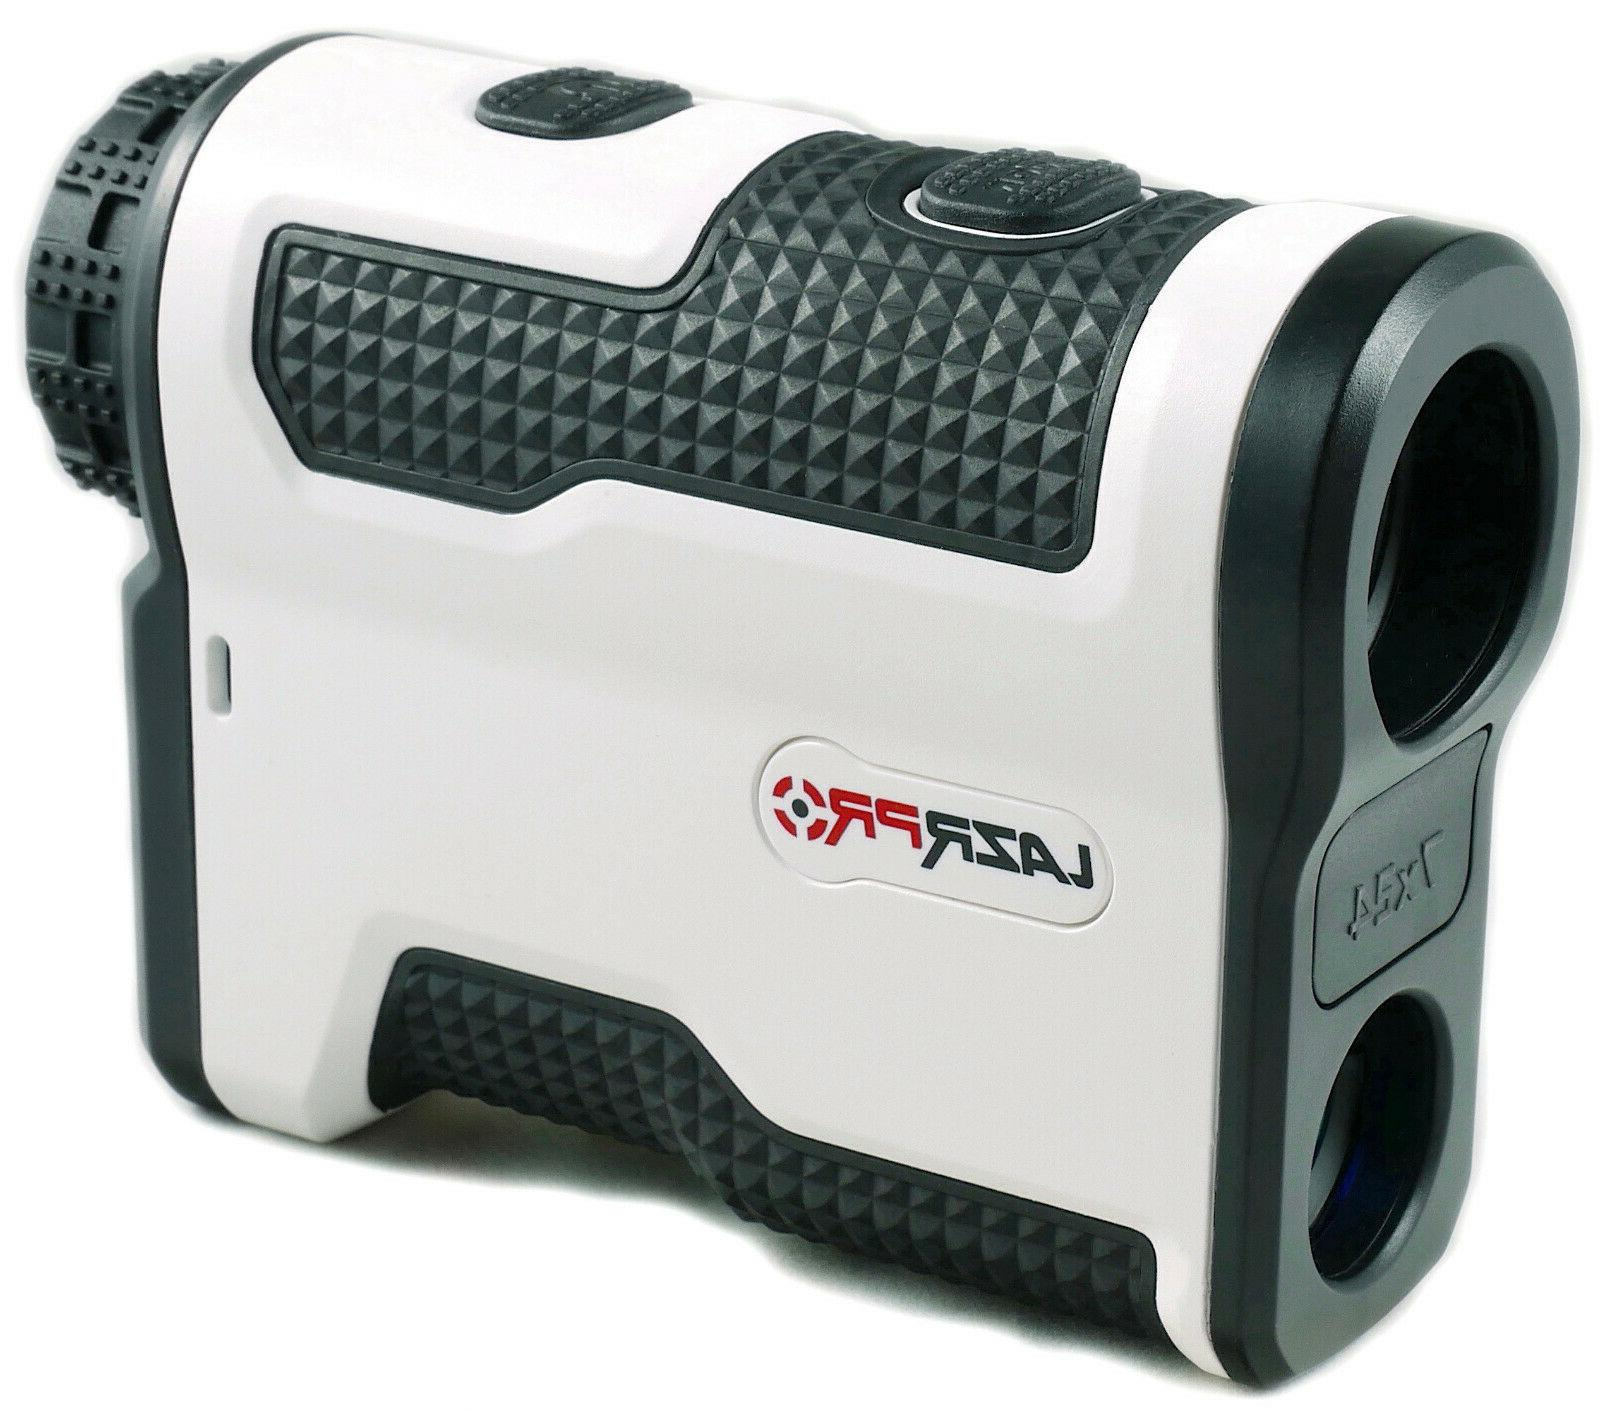 LAZRPRO RANGE FINDER VIBRATION 800YD 7X PRO-SX8